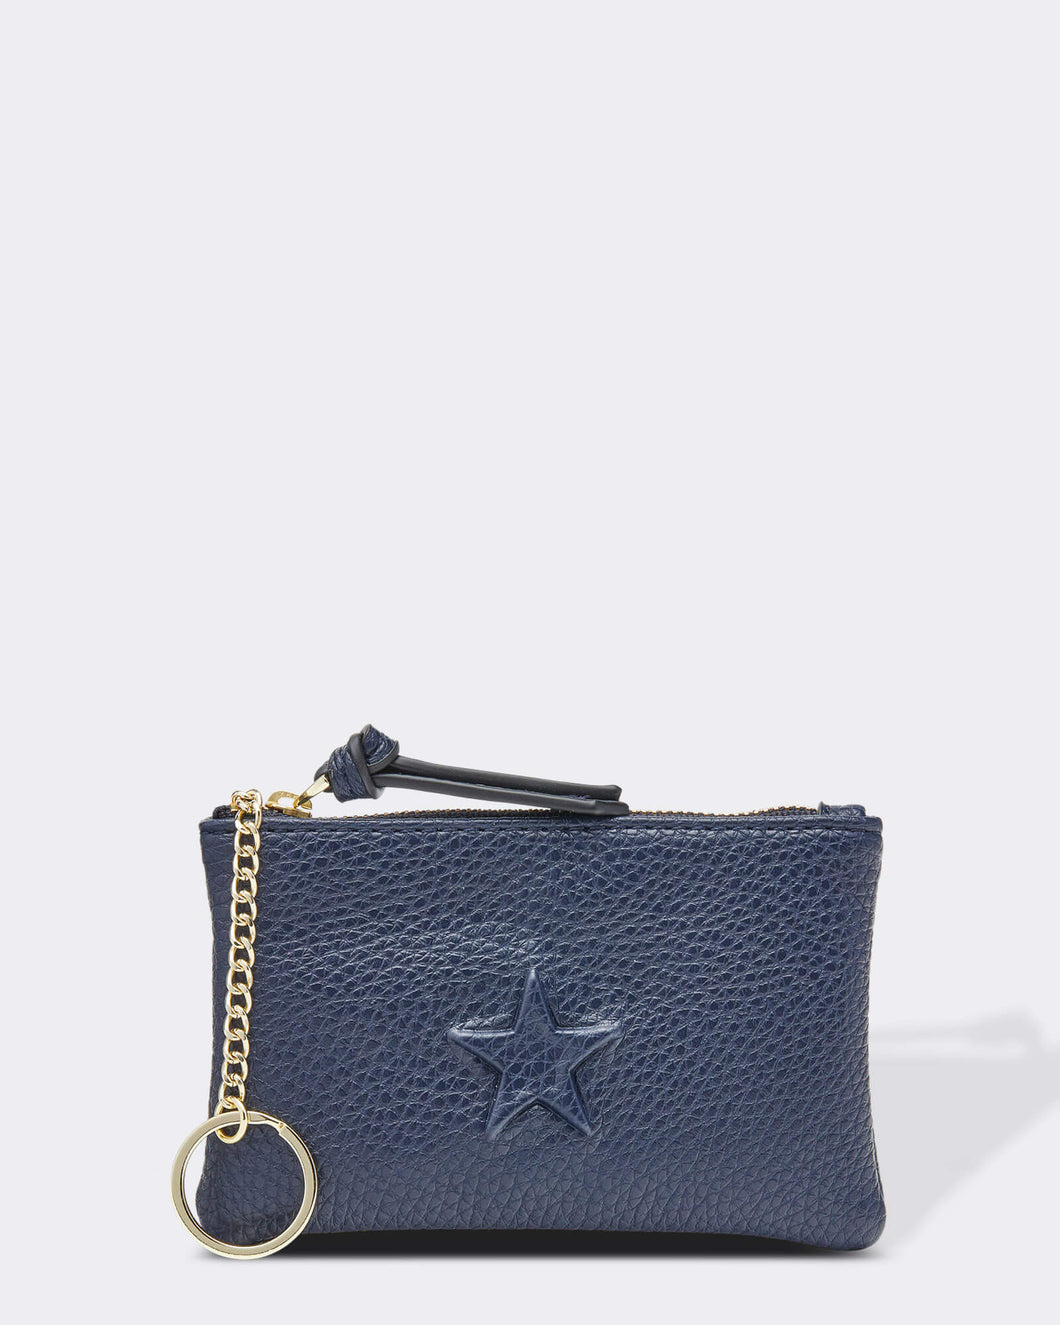 Star Purse Navy